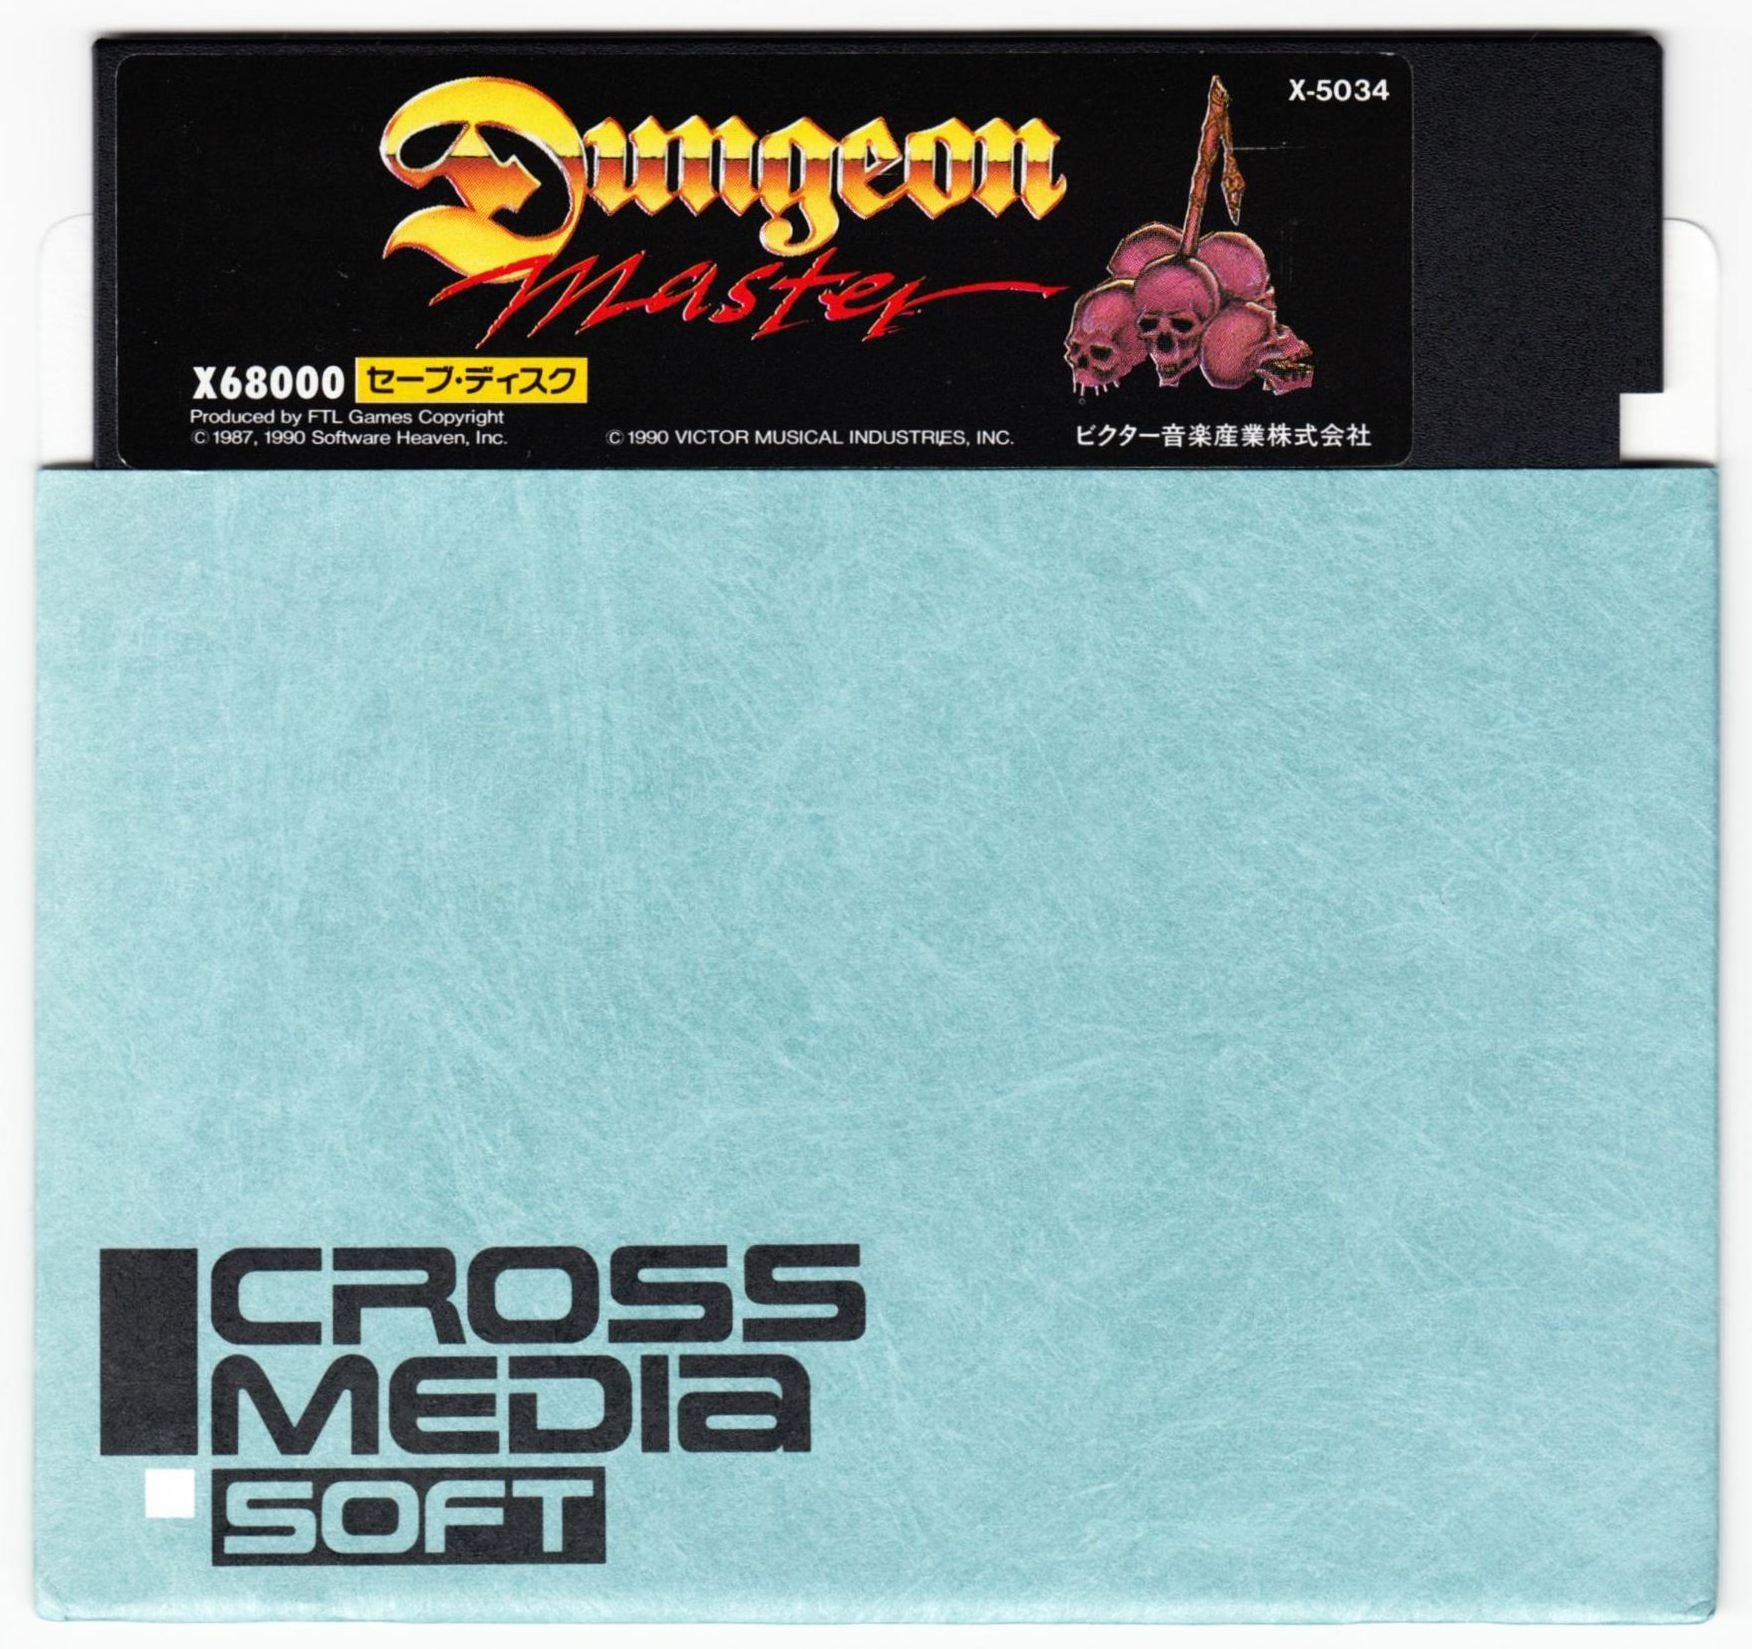 Game - Dungeon Master - JP - X68000 - Save Disk - Front - Scan